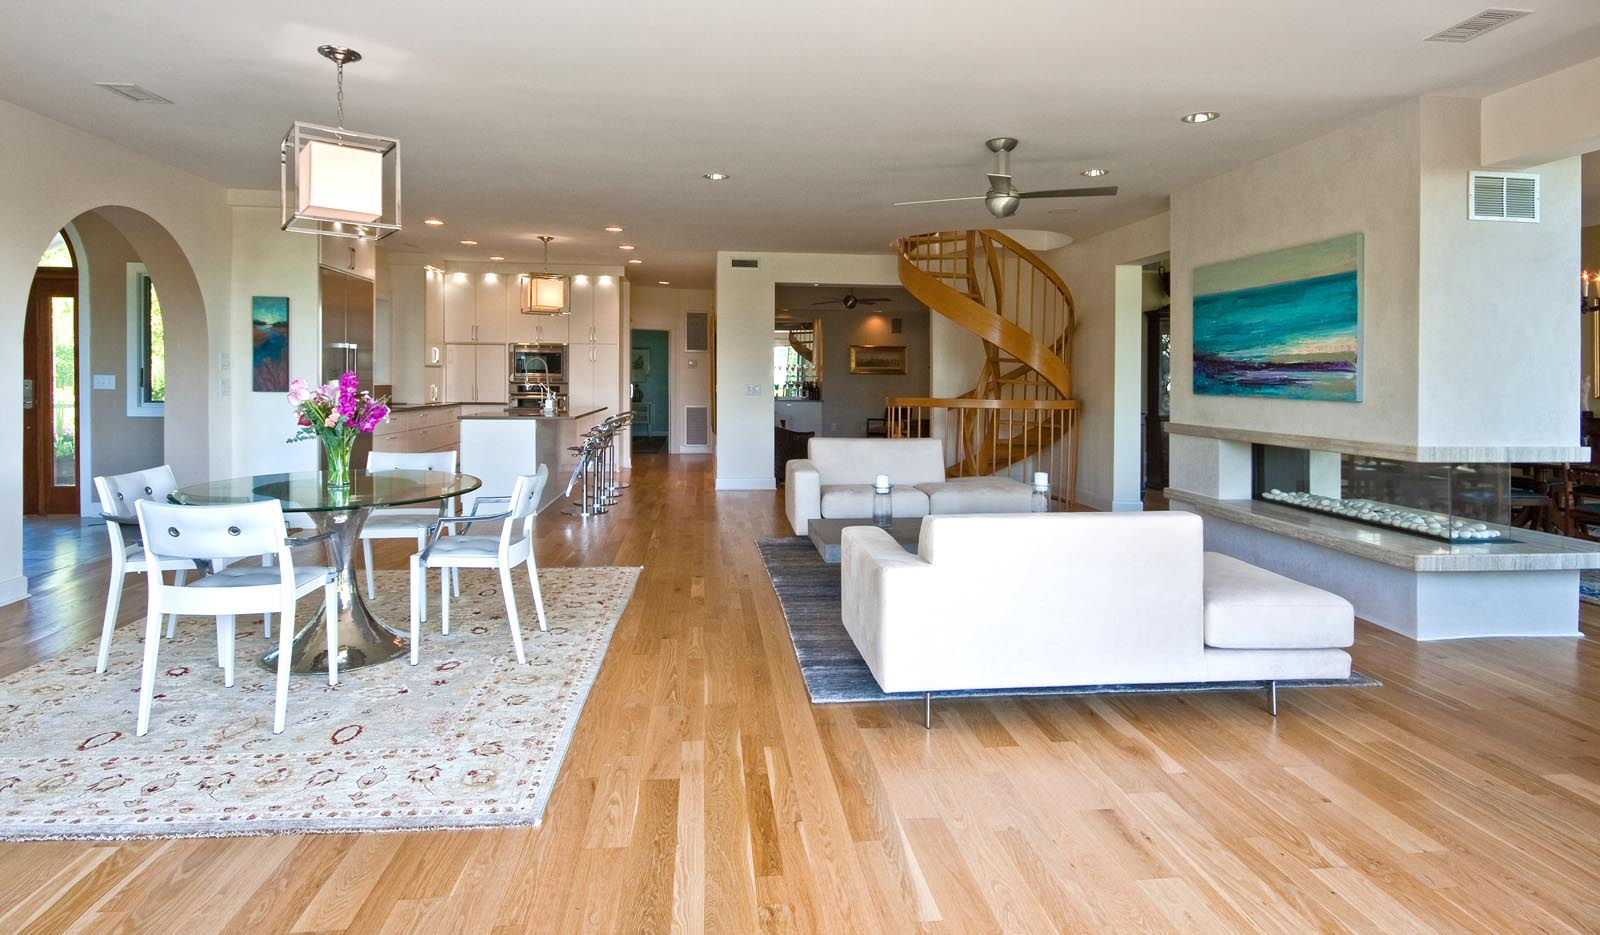 sullivans island modern beach home remodel - magnificent. must see